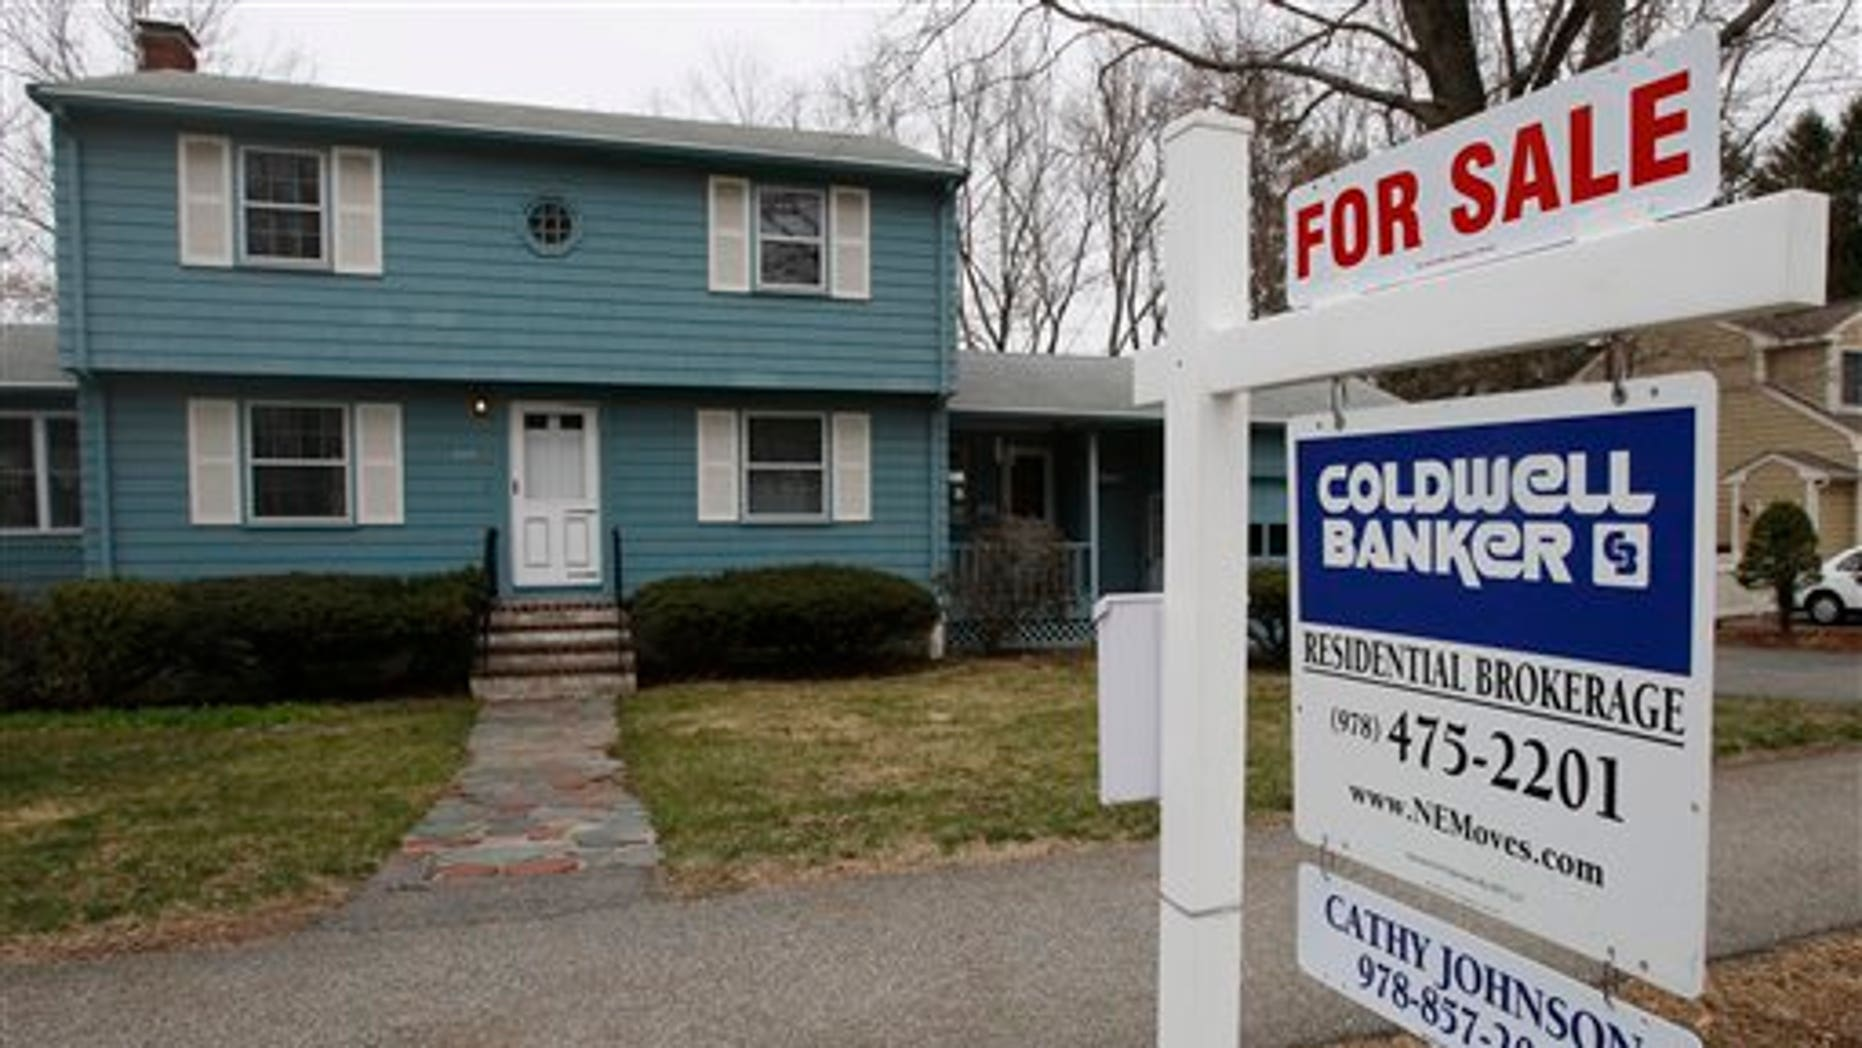 In this April 12, 2011 photo, an existing home is posted for sale in North Andover, Mass. Sales of existing-home sales rose in March, continuing an uneven recovery that began after sales bottomed last July, according to the National Association of Realtors. (AP Photo/Charles Krupa)